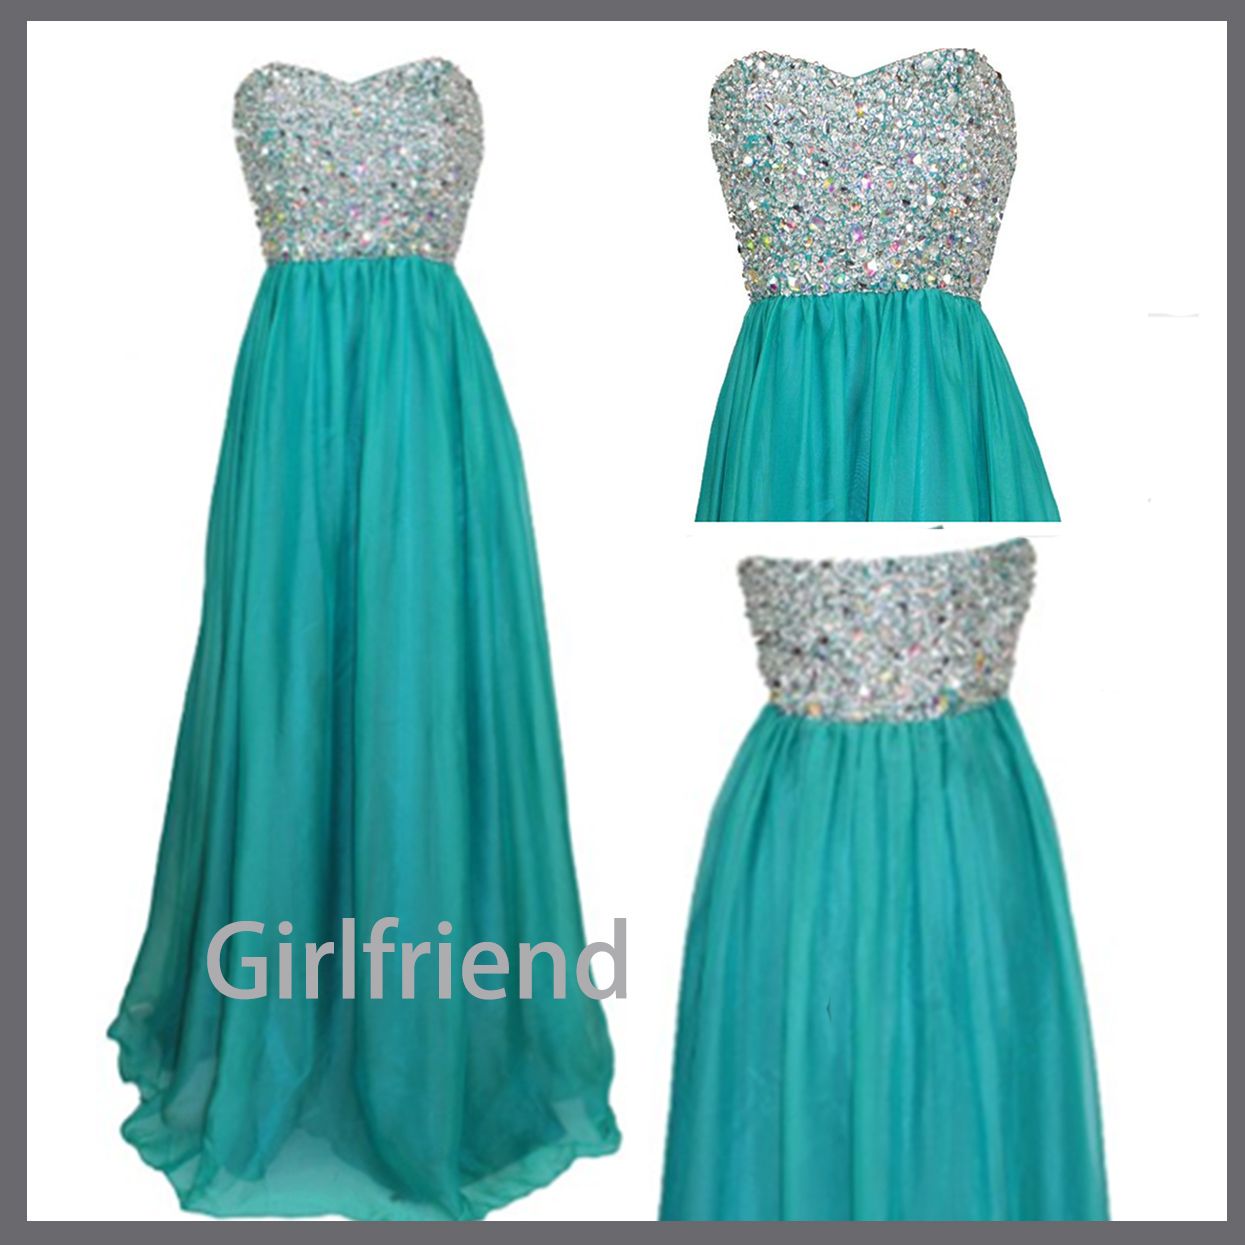 Girls in Prom Dresses Tumblr Photgrapy | Dress images